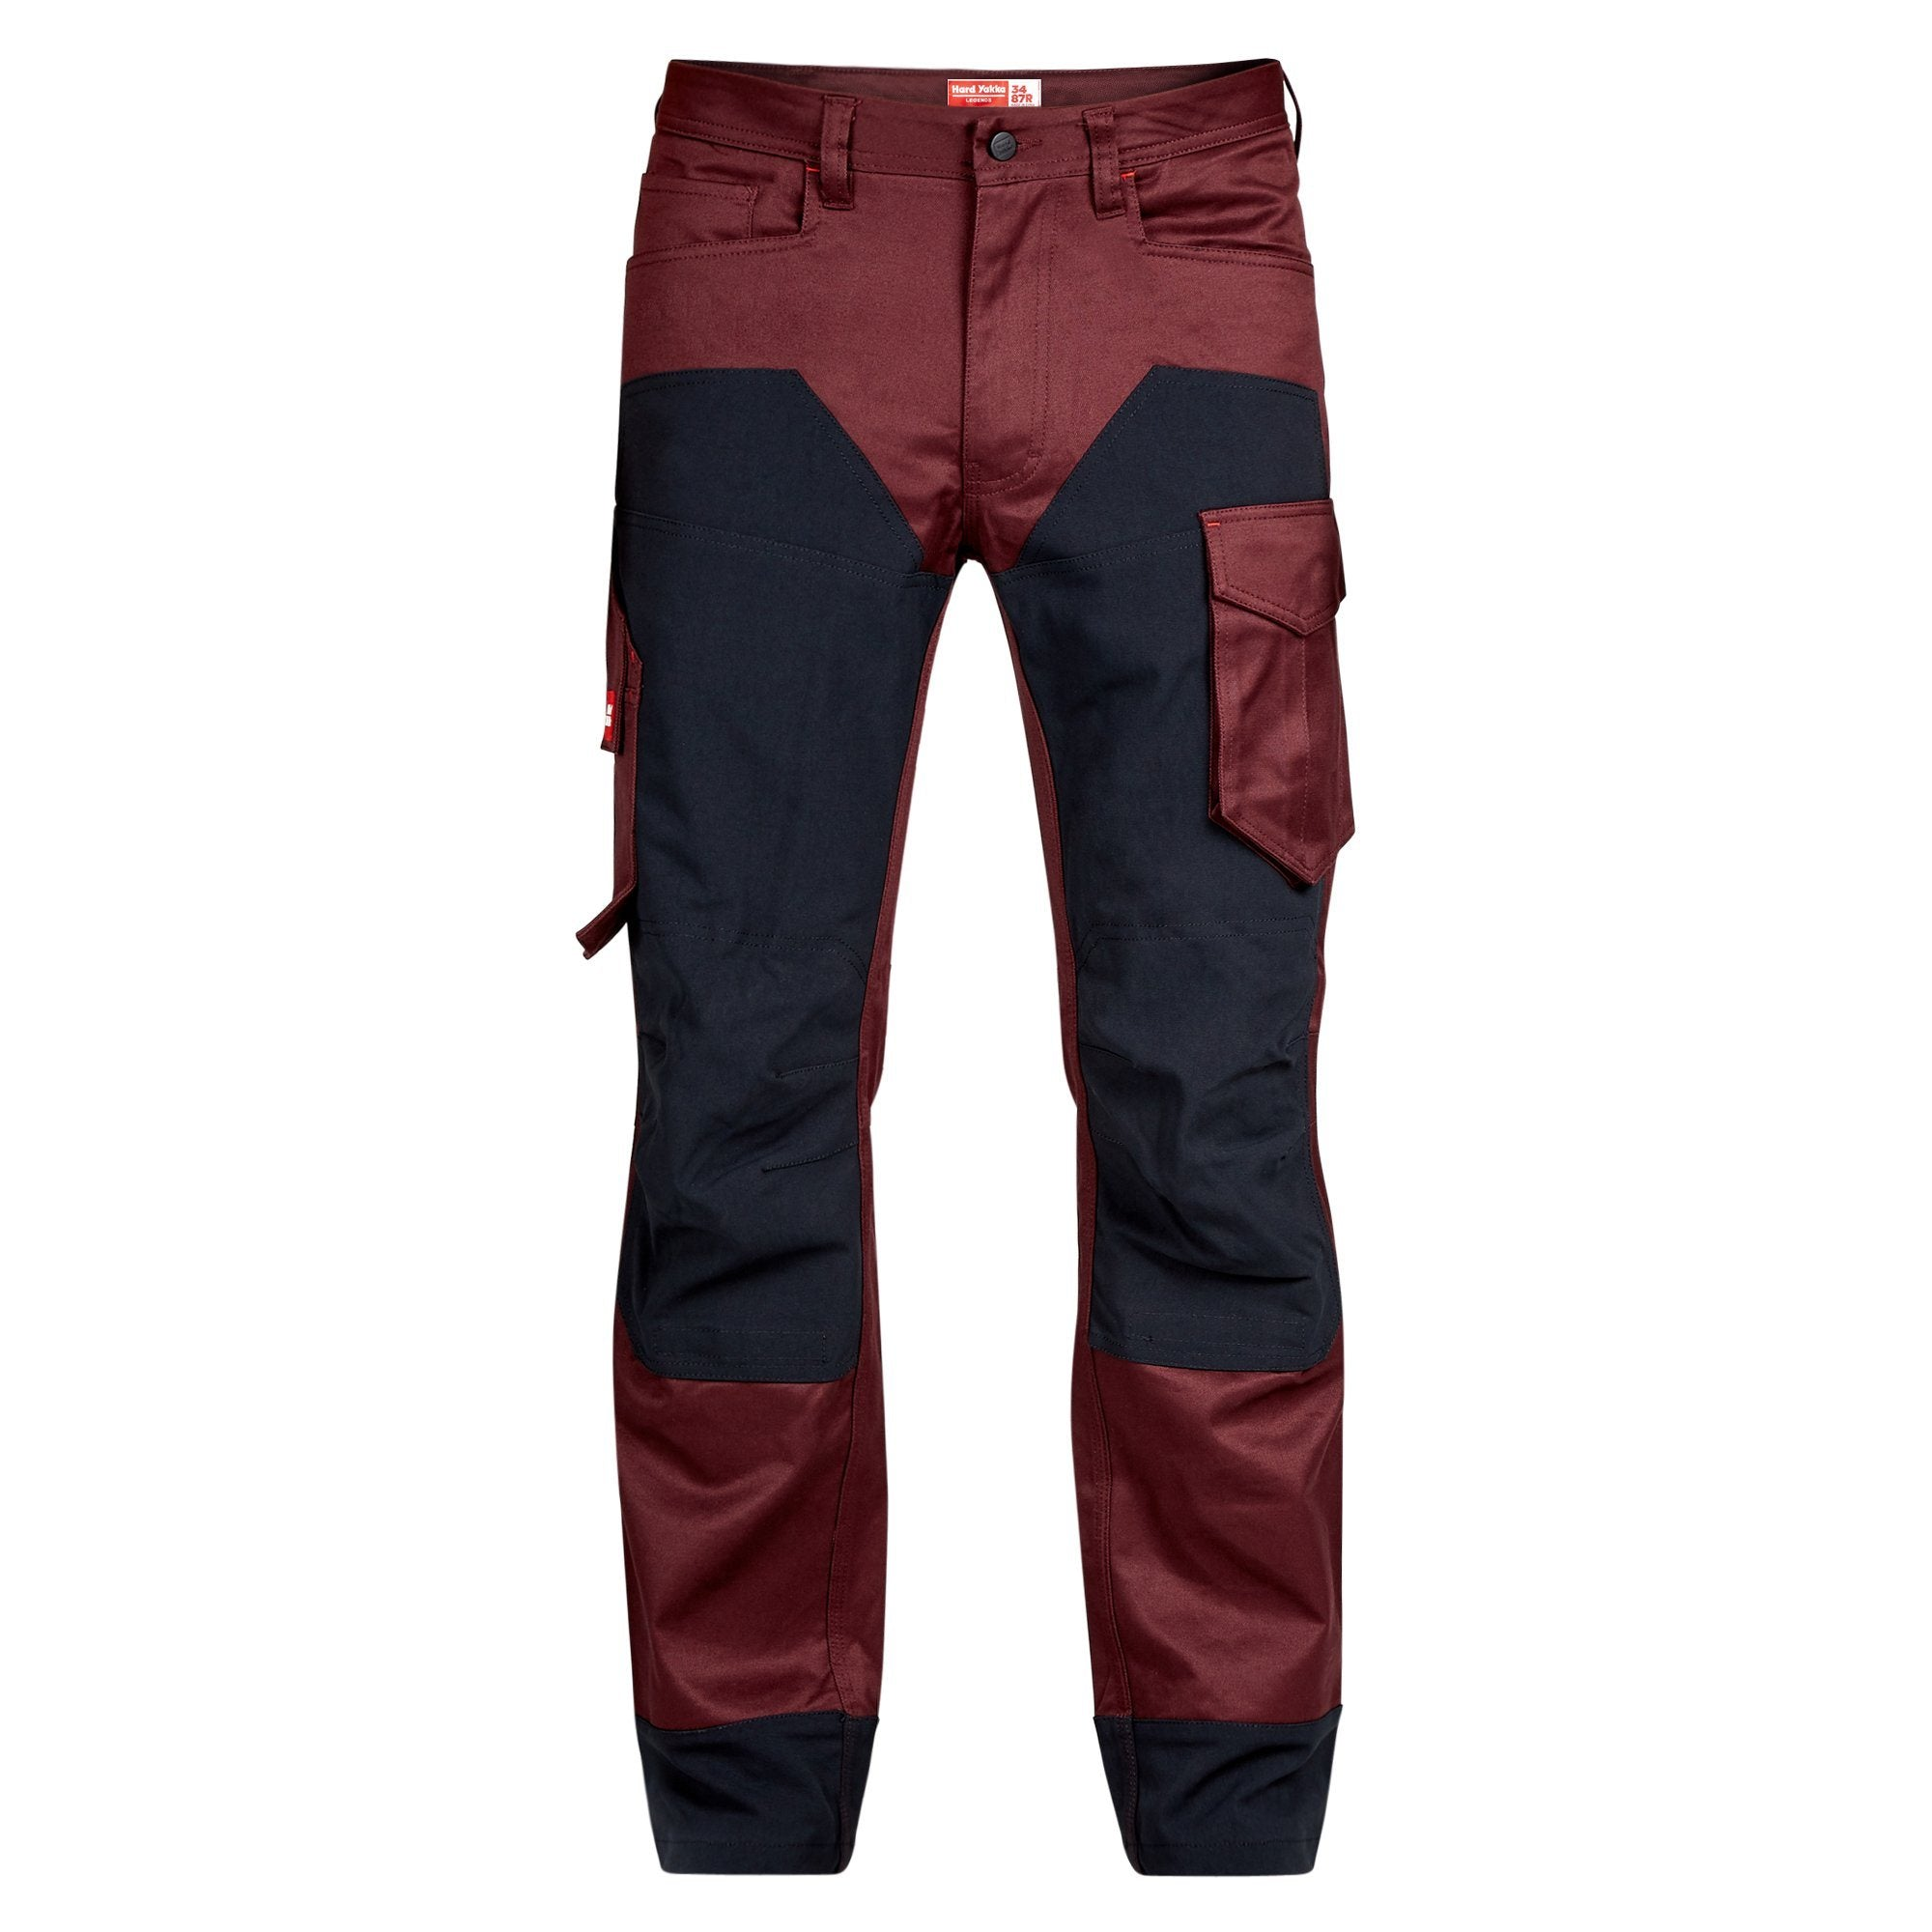 Hard Yakka Legends 3D Stretch Pants - Plum/Black Workwear Isbister & Co